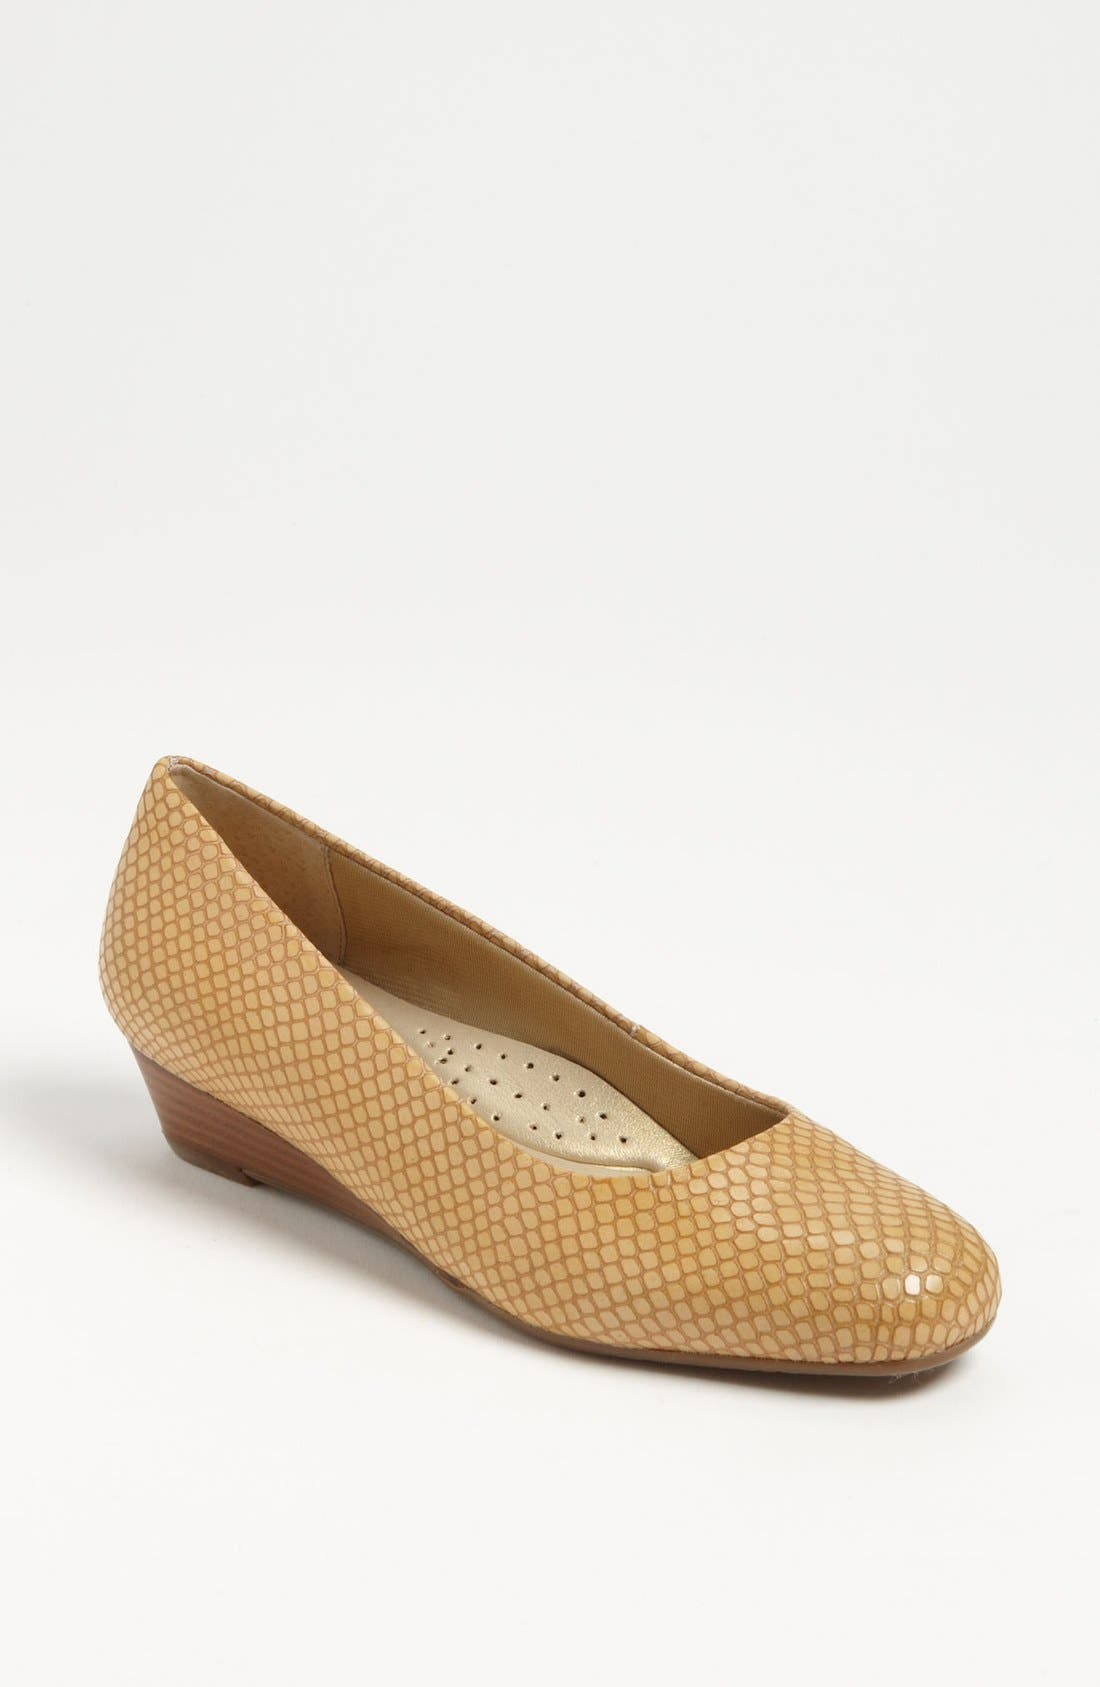 Main Image - Trotters 'Lauren' Wedge